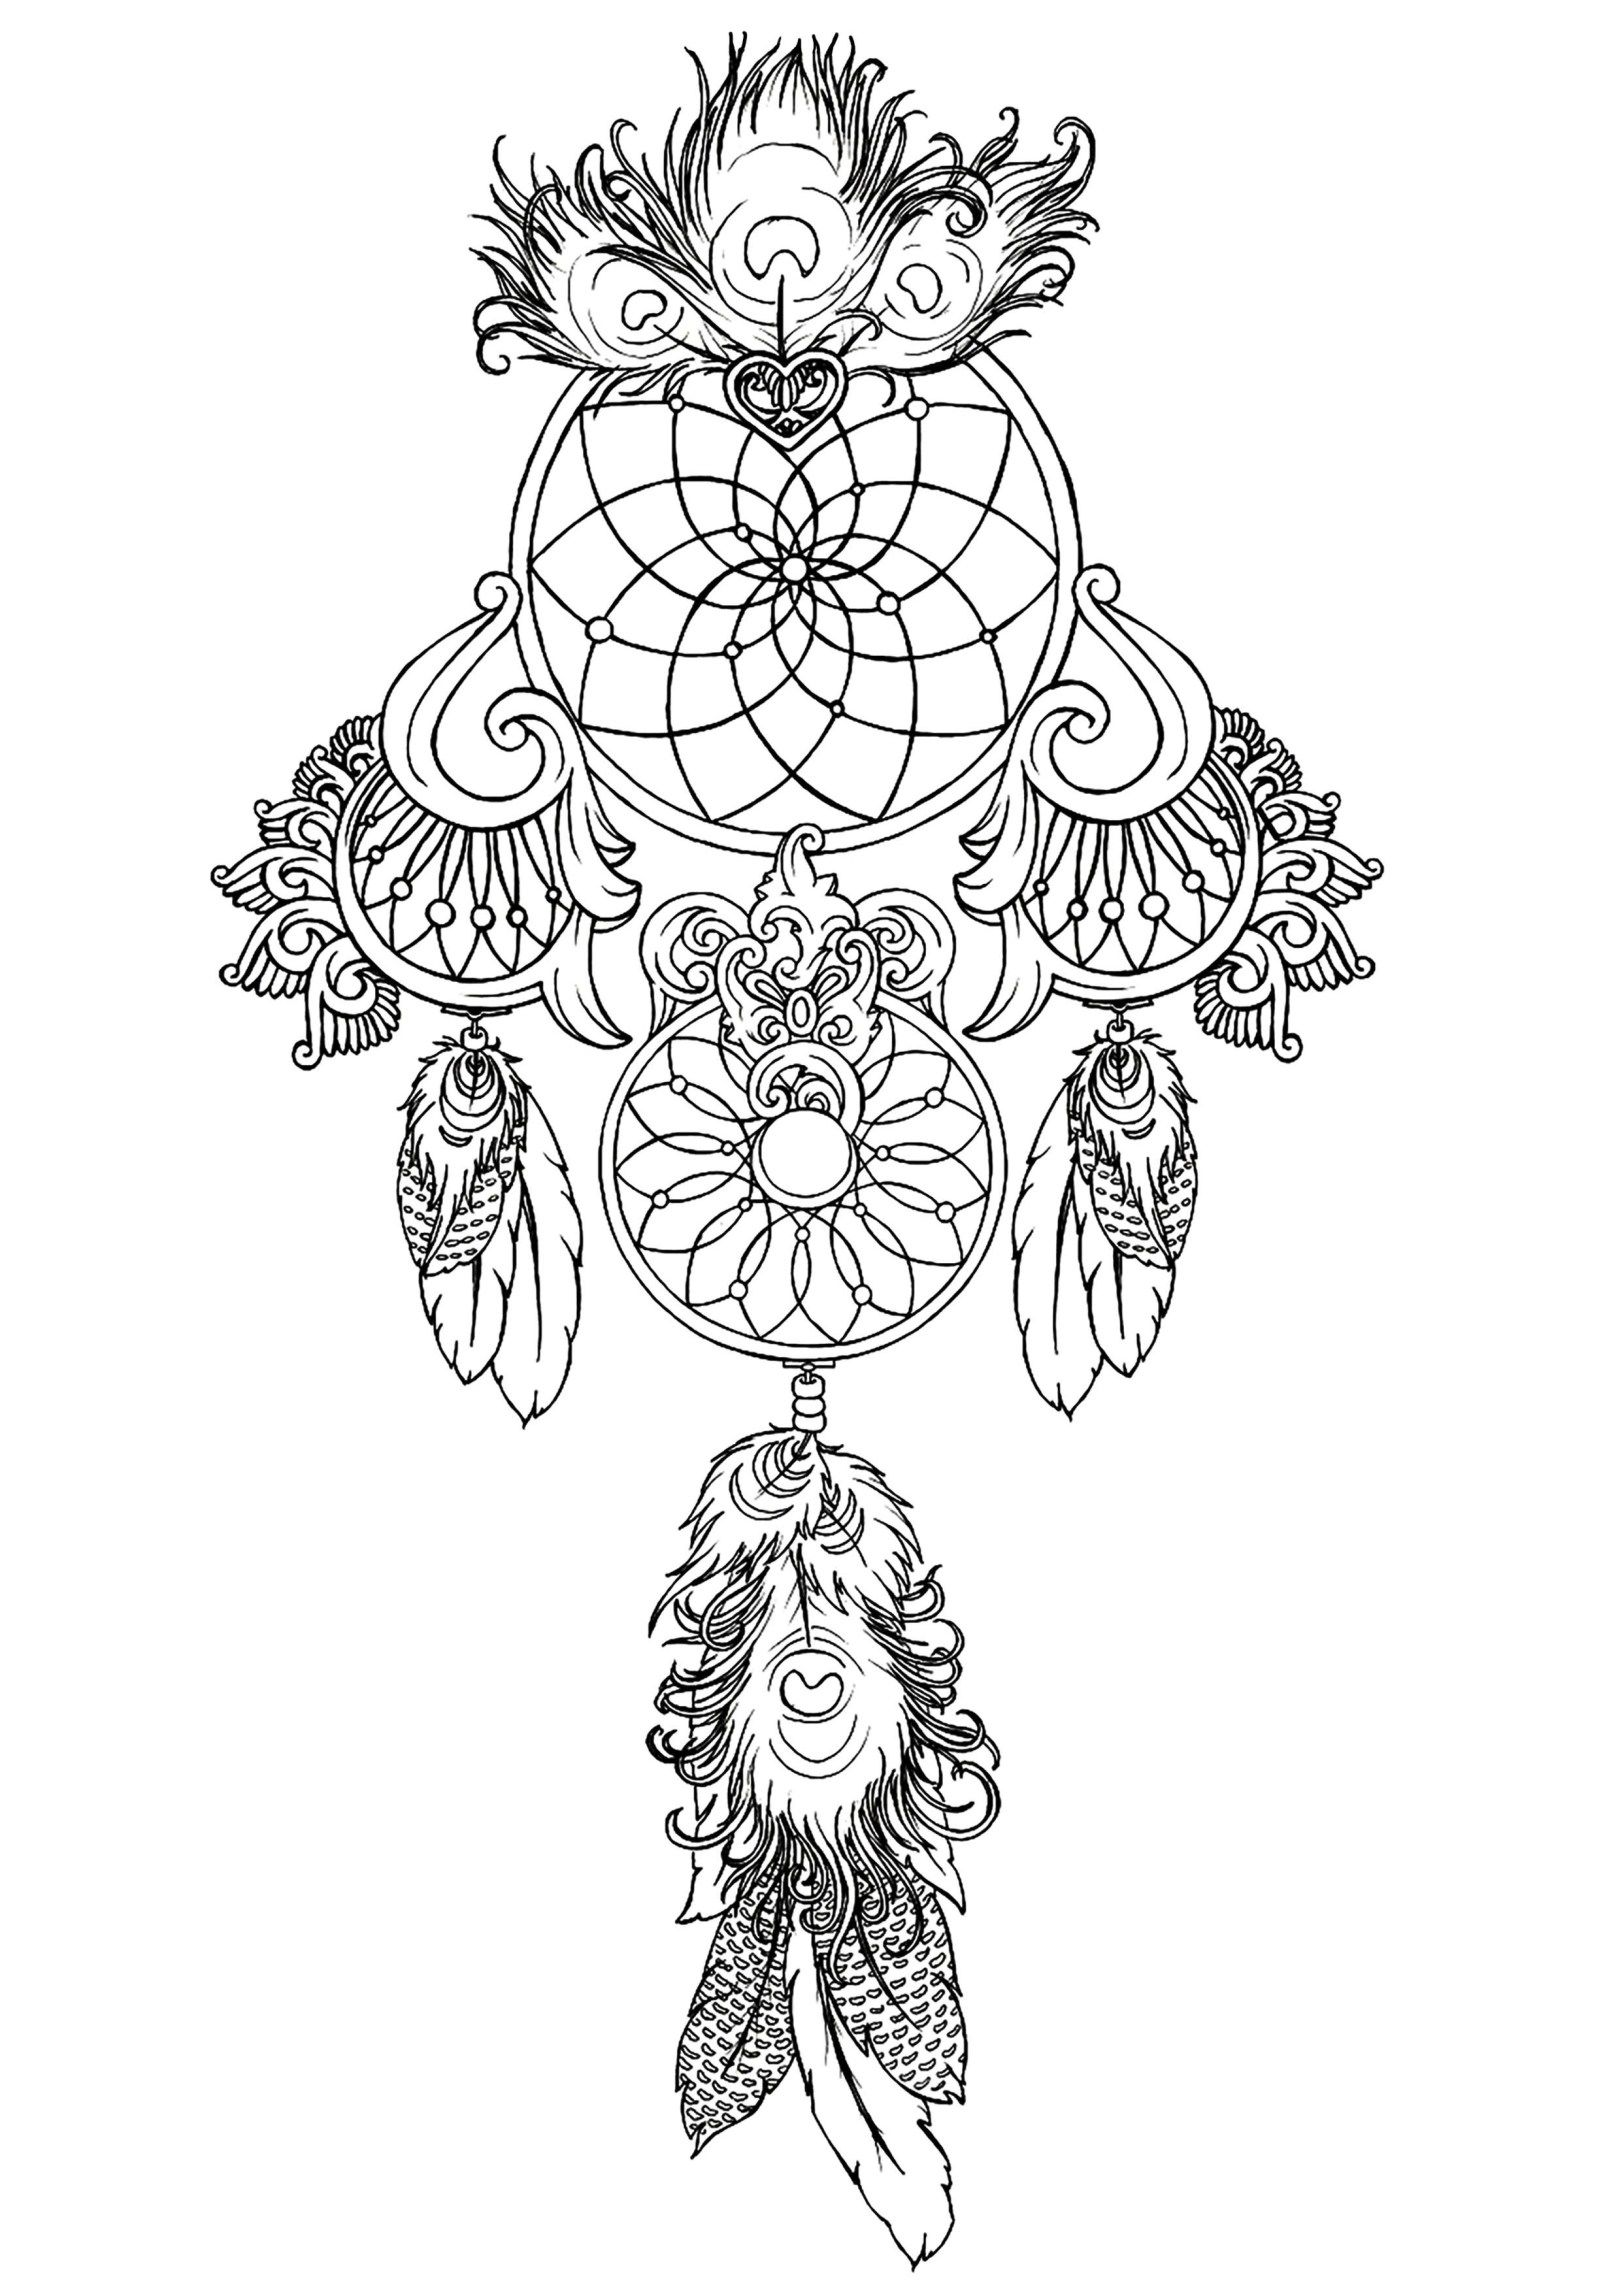 Free Online Coloring Pages for Adults | Adult coloring pages ...